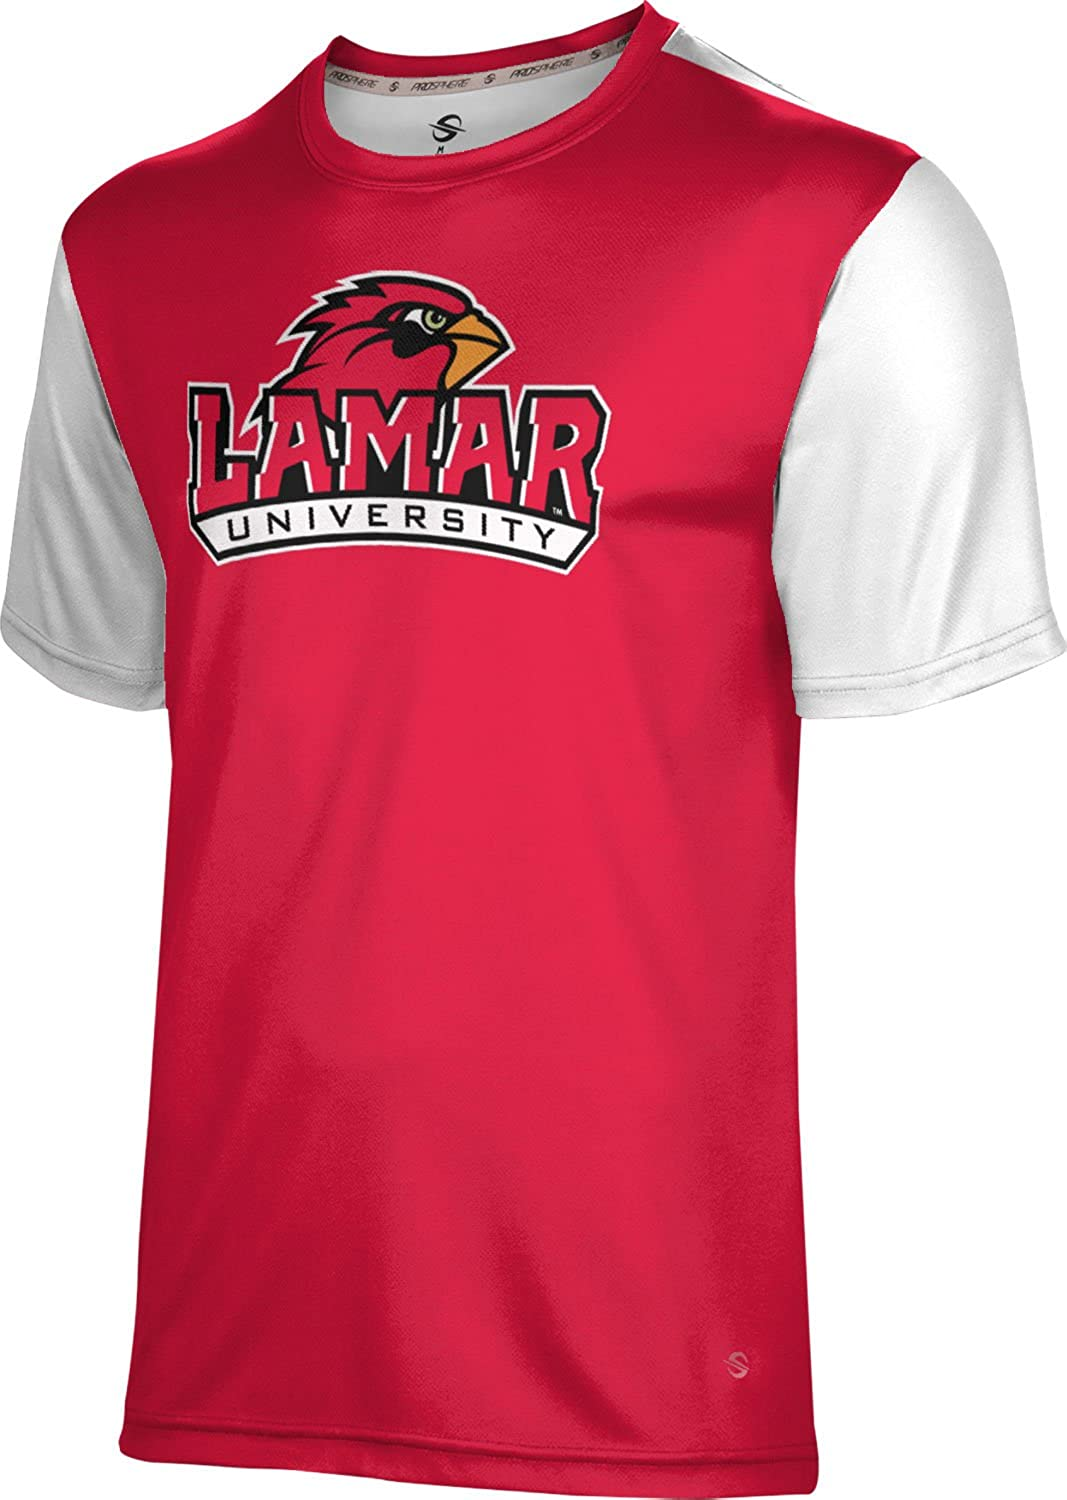 Secondskin ProSphere Lamar University Boys Performance T-Shirt